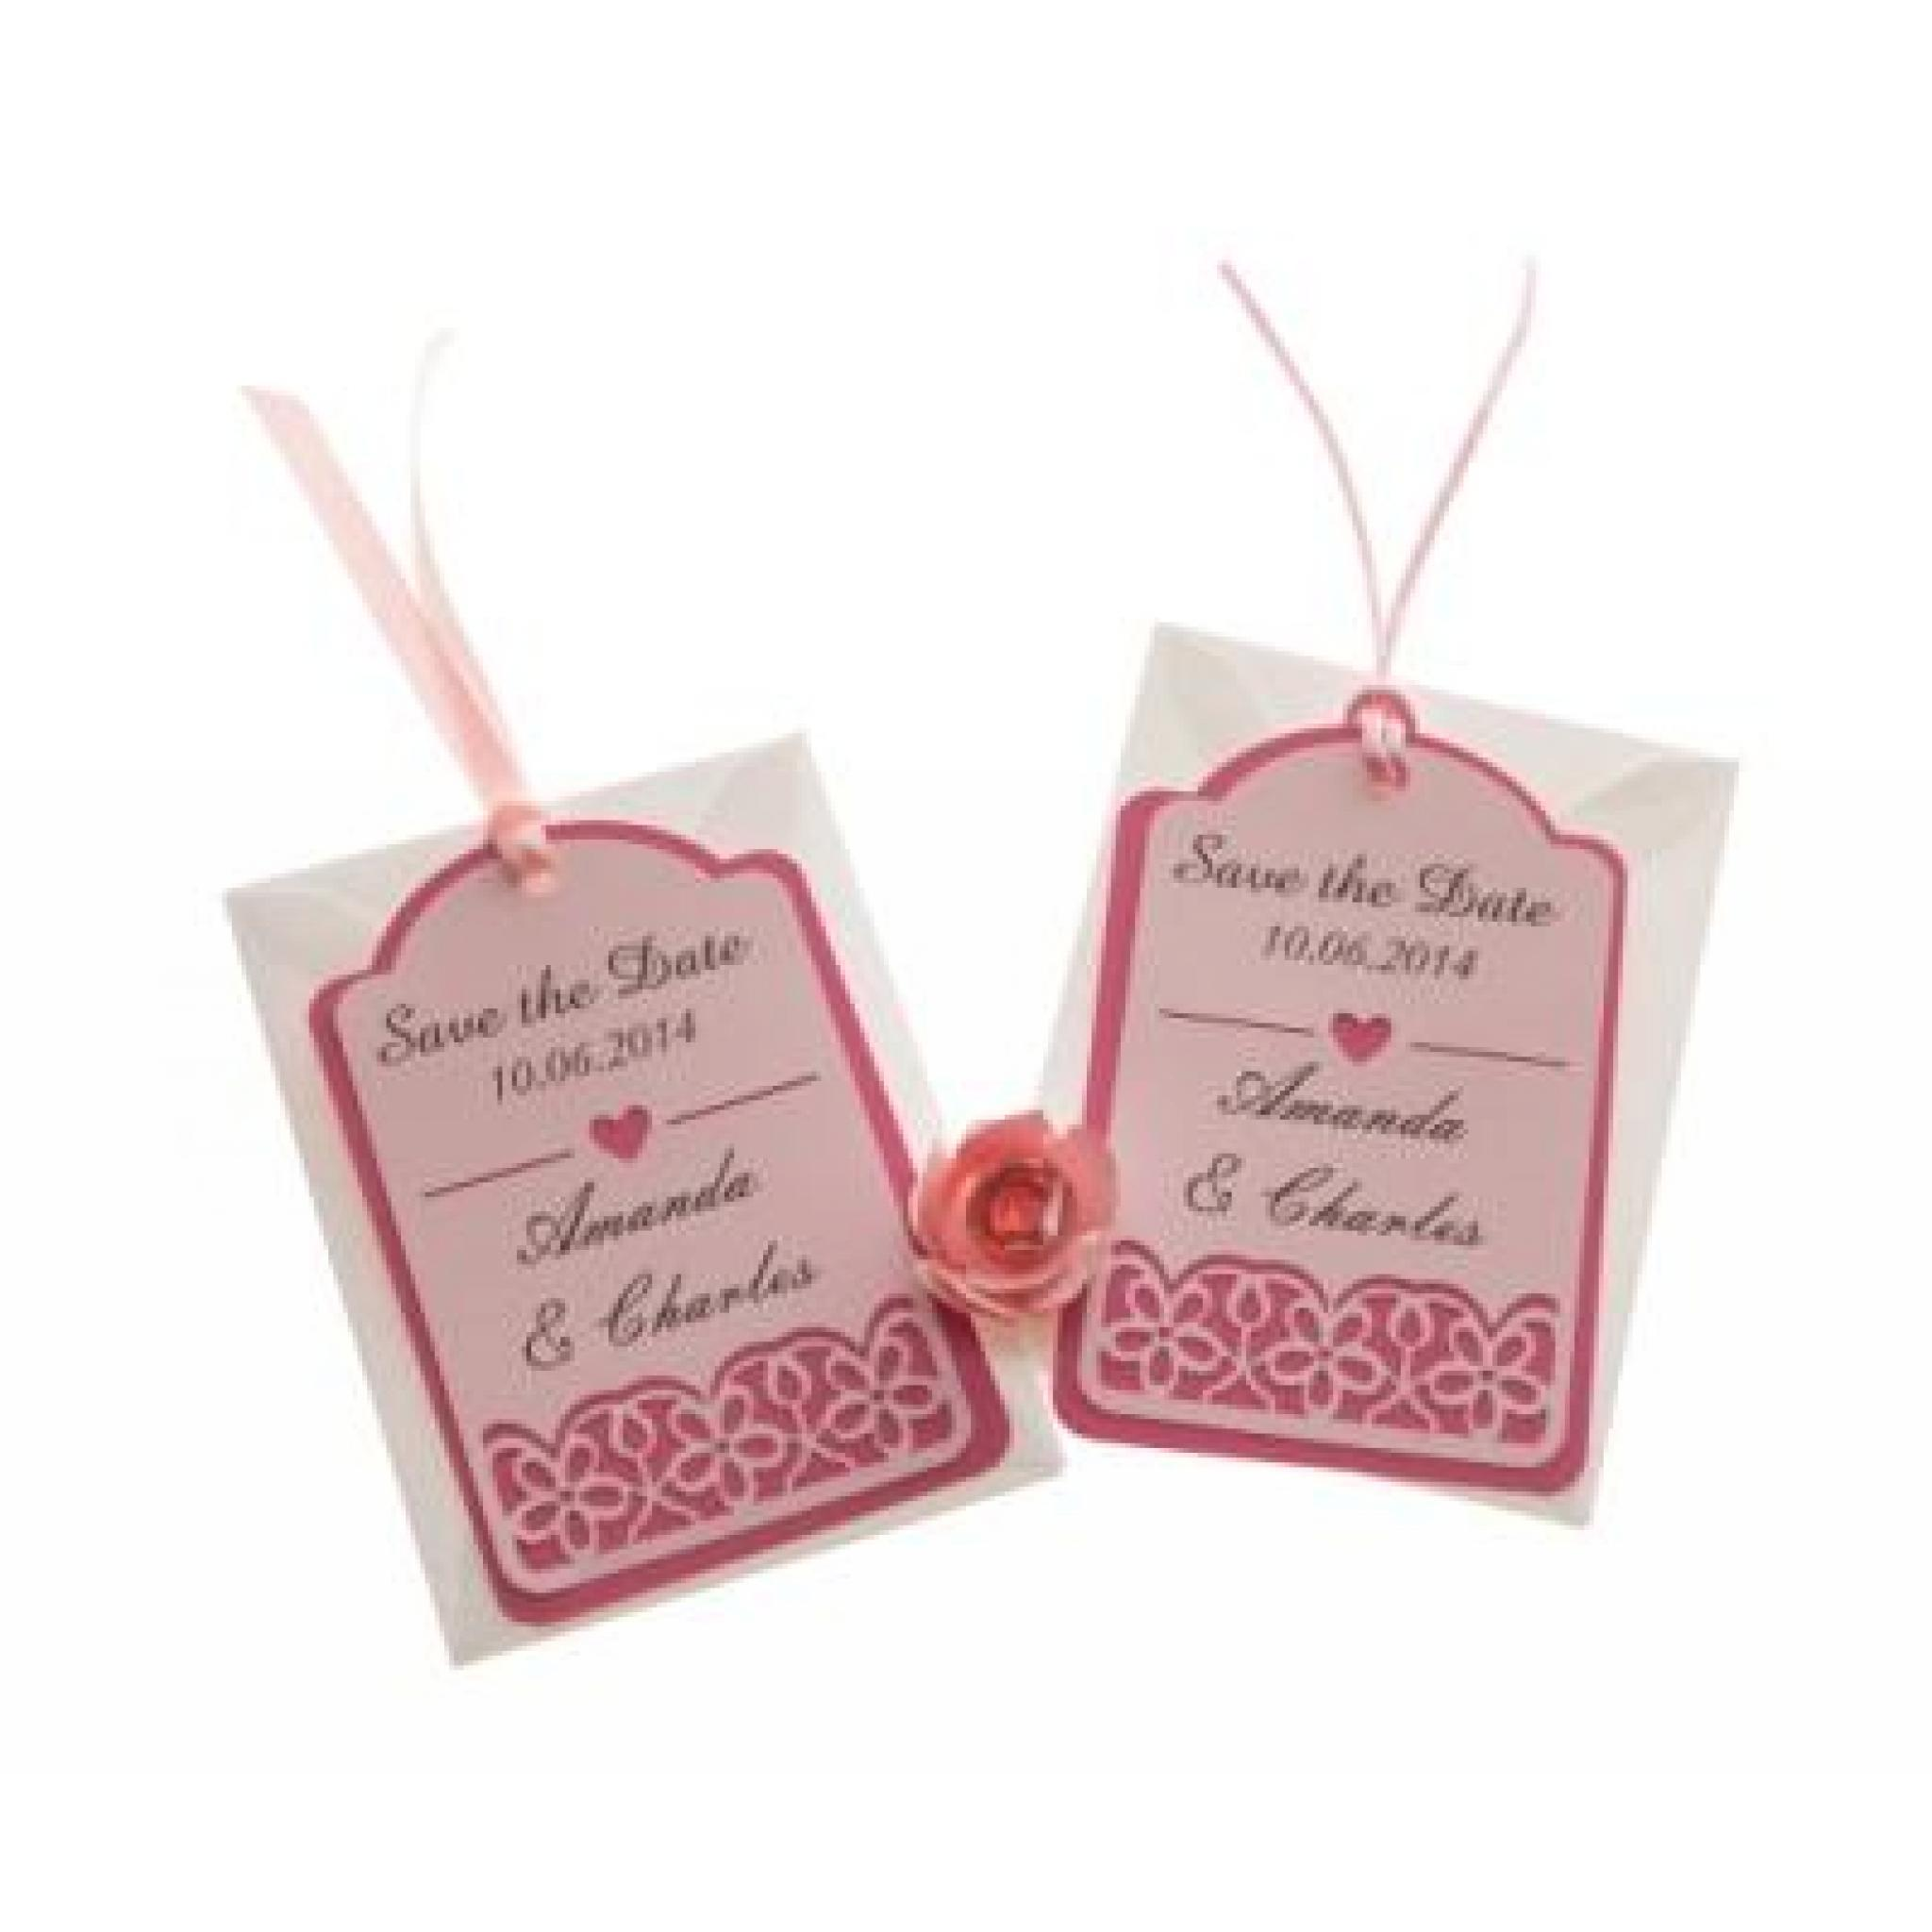 cb3300d9decb Brown kraft card save the date luggage tags FLORAL CUT x 25, available fro  razzle dazzle rose